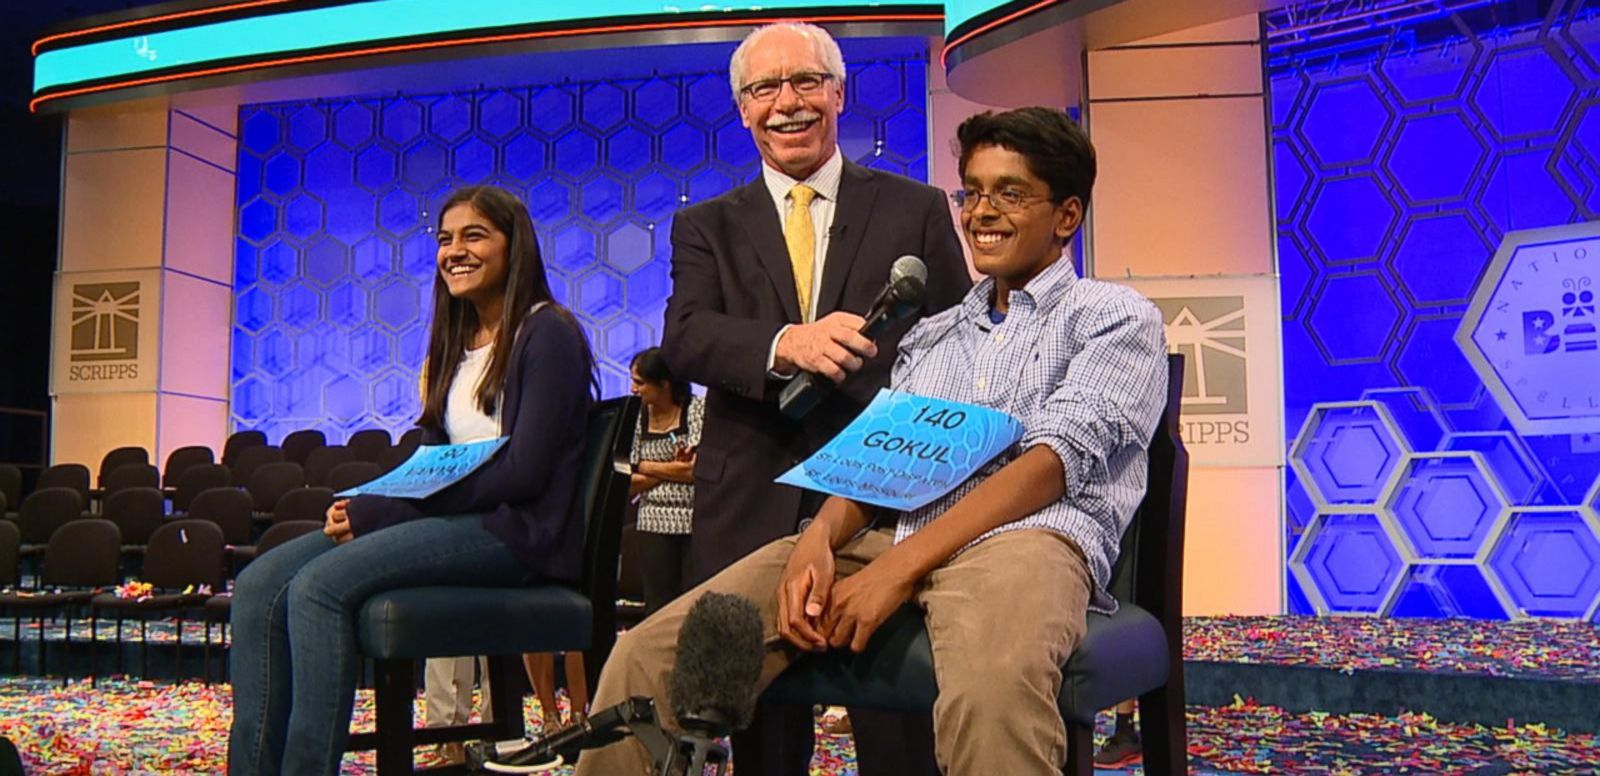 VIDEO: Watch these kid spelling whizzes get ready for their big night competing in the Scripps' National Spelling Bee Championship Finals.